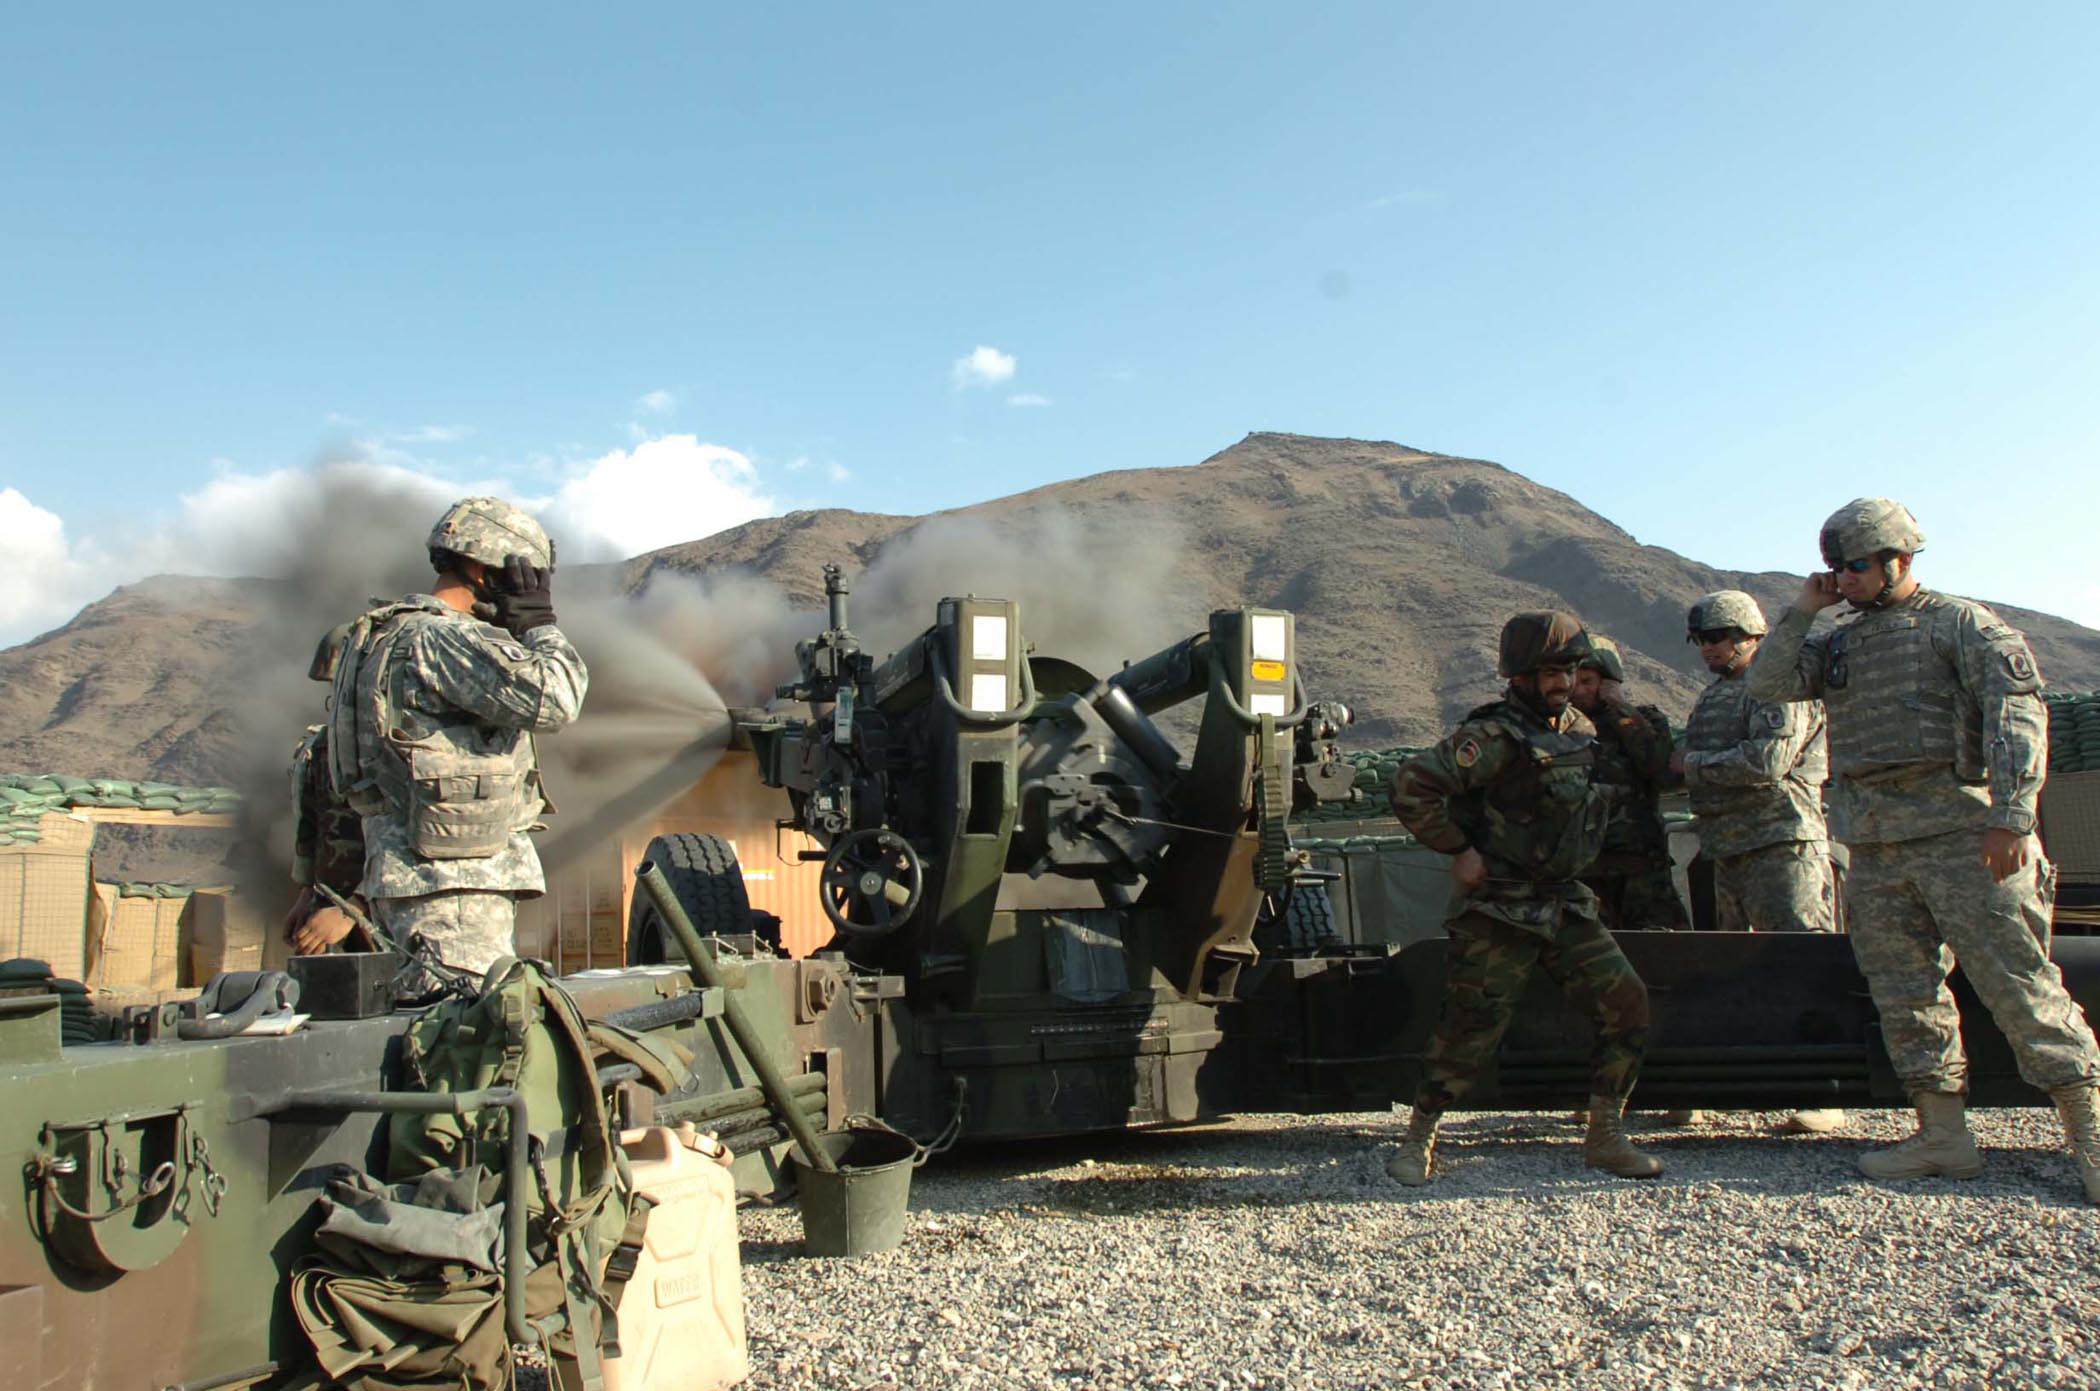 file us iers cover ears while afghan national army ier file us iers cover ears while afghan national army ier fires m 198 howitzer